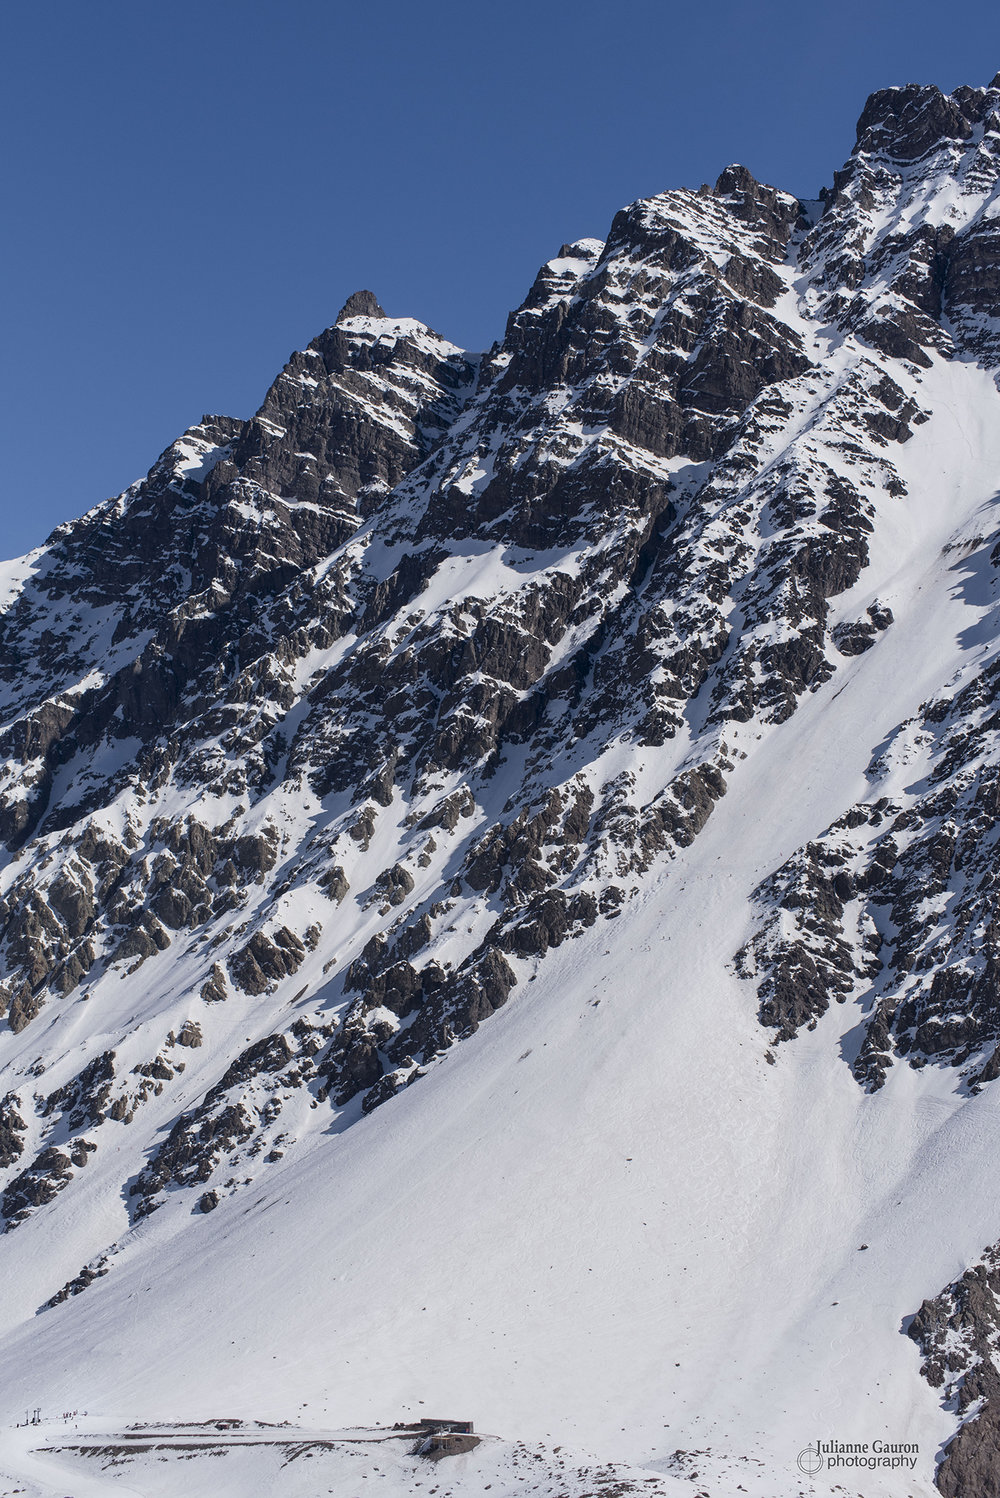 "Roca Jack is served by a slingshot and to give you a sense of scale the slingshot loading area is just above the Roca Jack written at the start of this caption. The lift serves about halfway up to the top ridgeline, the rest must be hiked for the Super C, with ""no fall zone"" traverses going left across the cliffs for great runs like Cara Cara, S Chute, Le Stadio, and more."